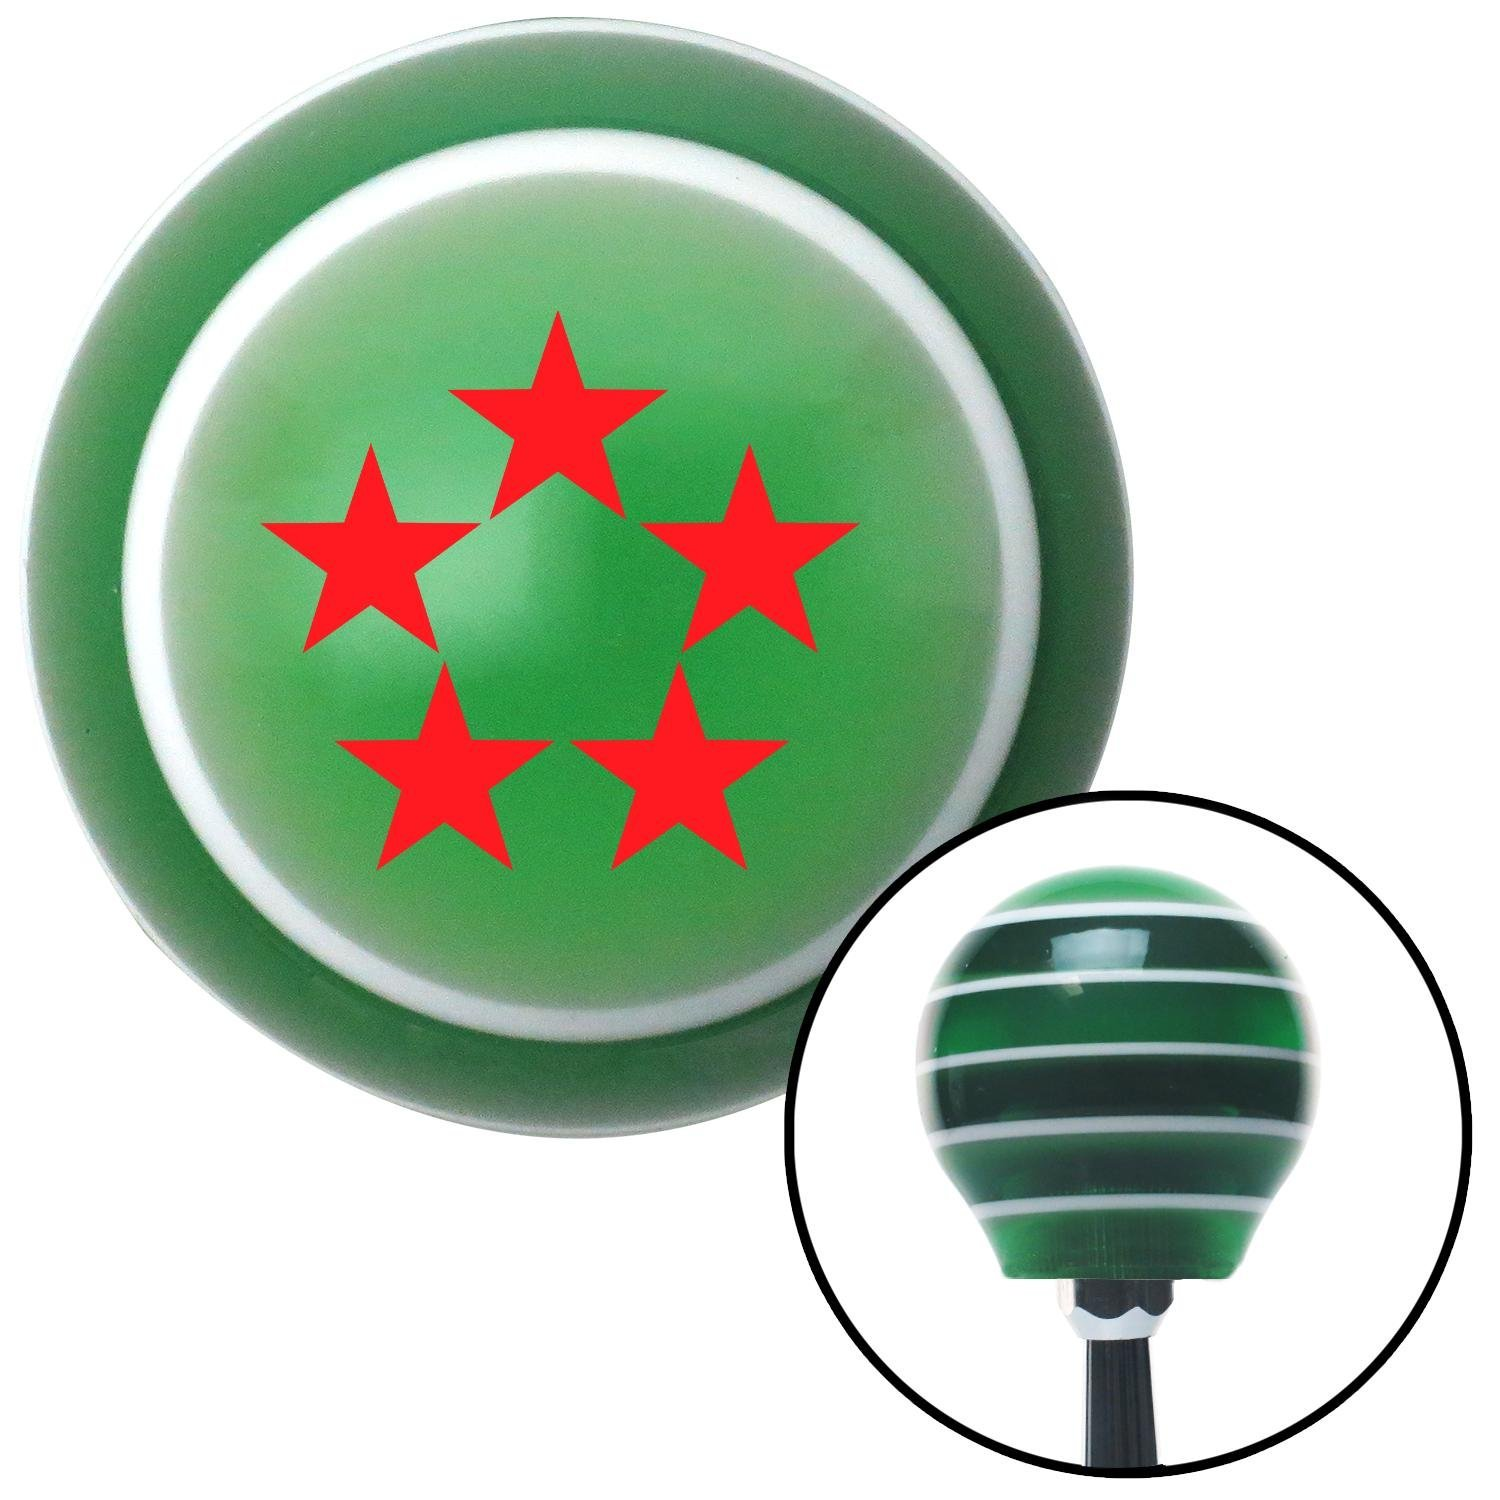 Red Officer 11 - General of Air Force American Shifter 124608 Green Stripe Shift Knob with M16 x 1.5 Insert